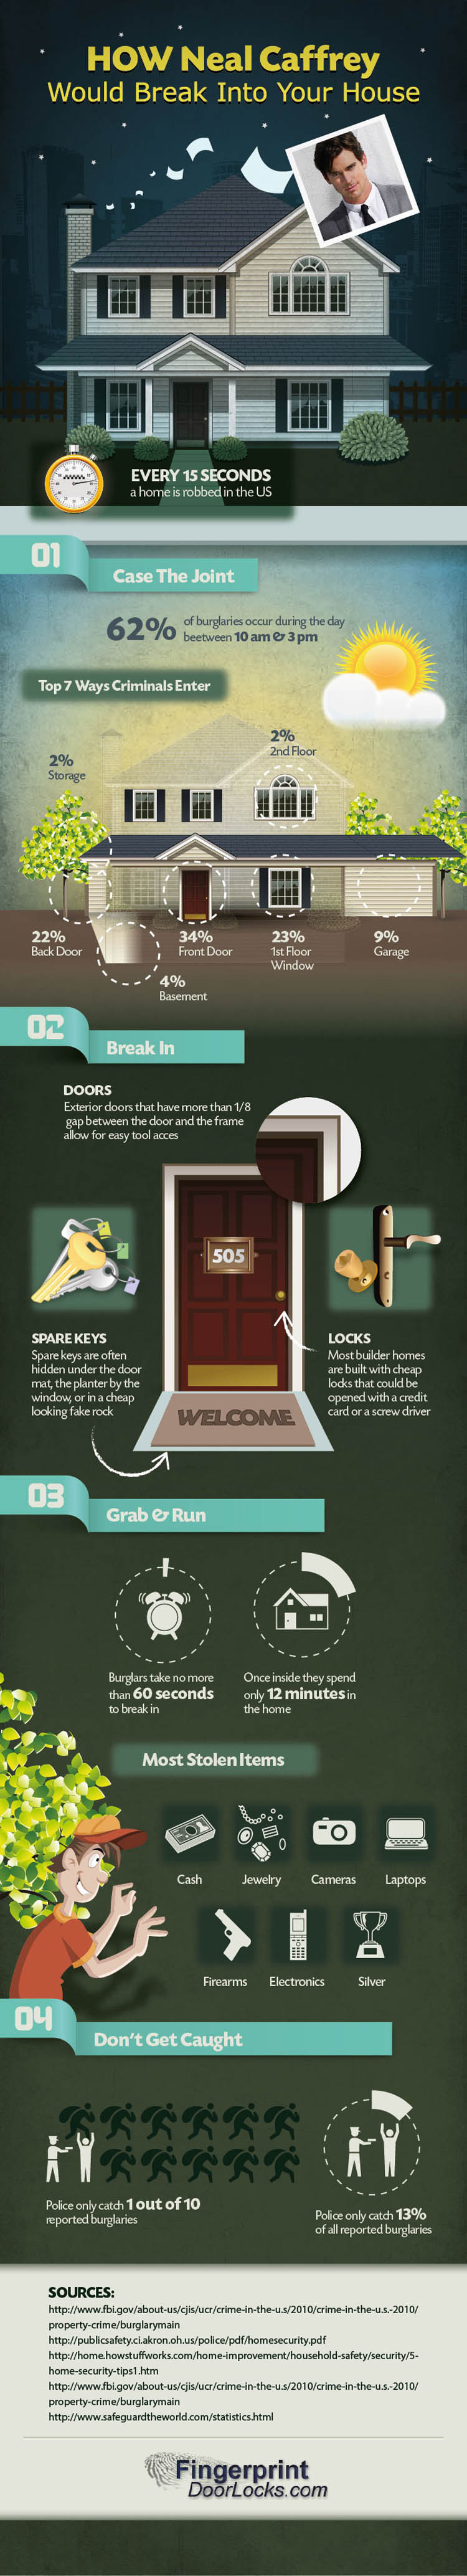 How Neal Caffrey Would Break Into Your House